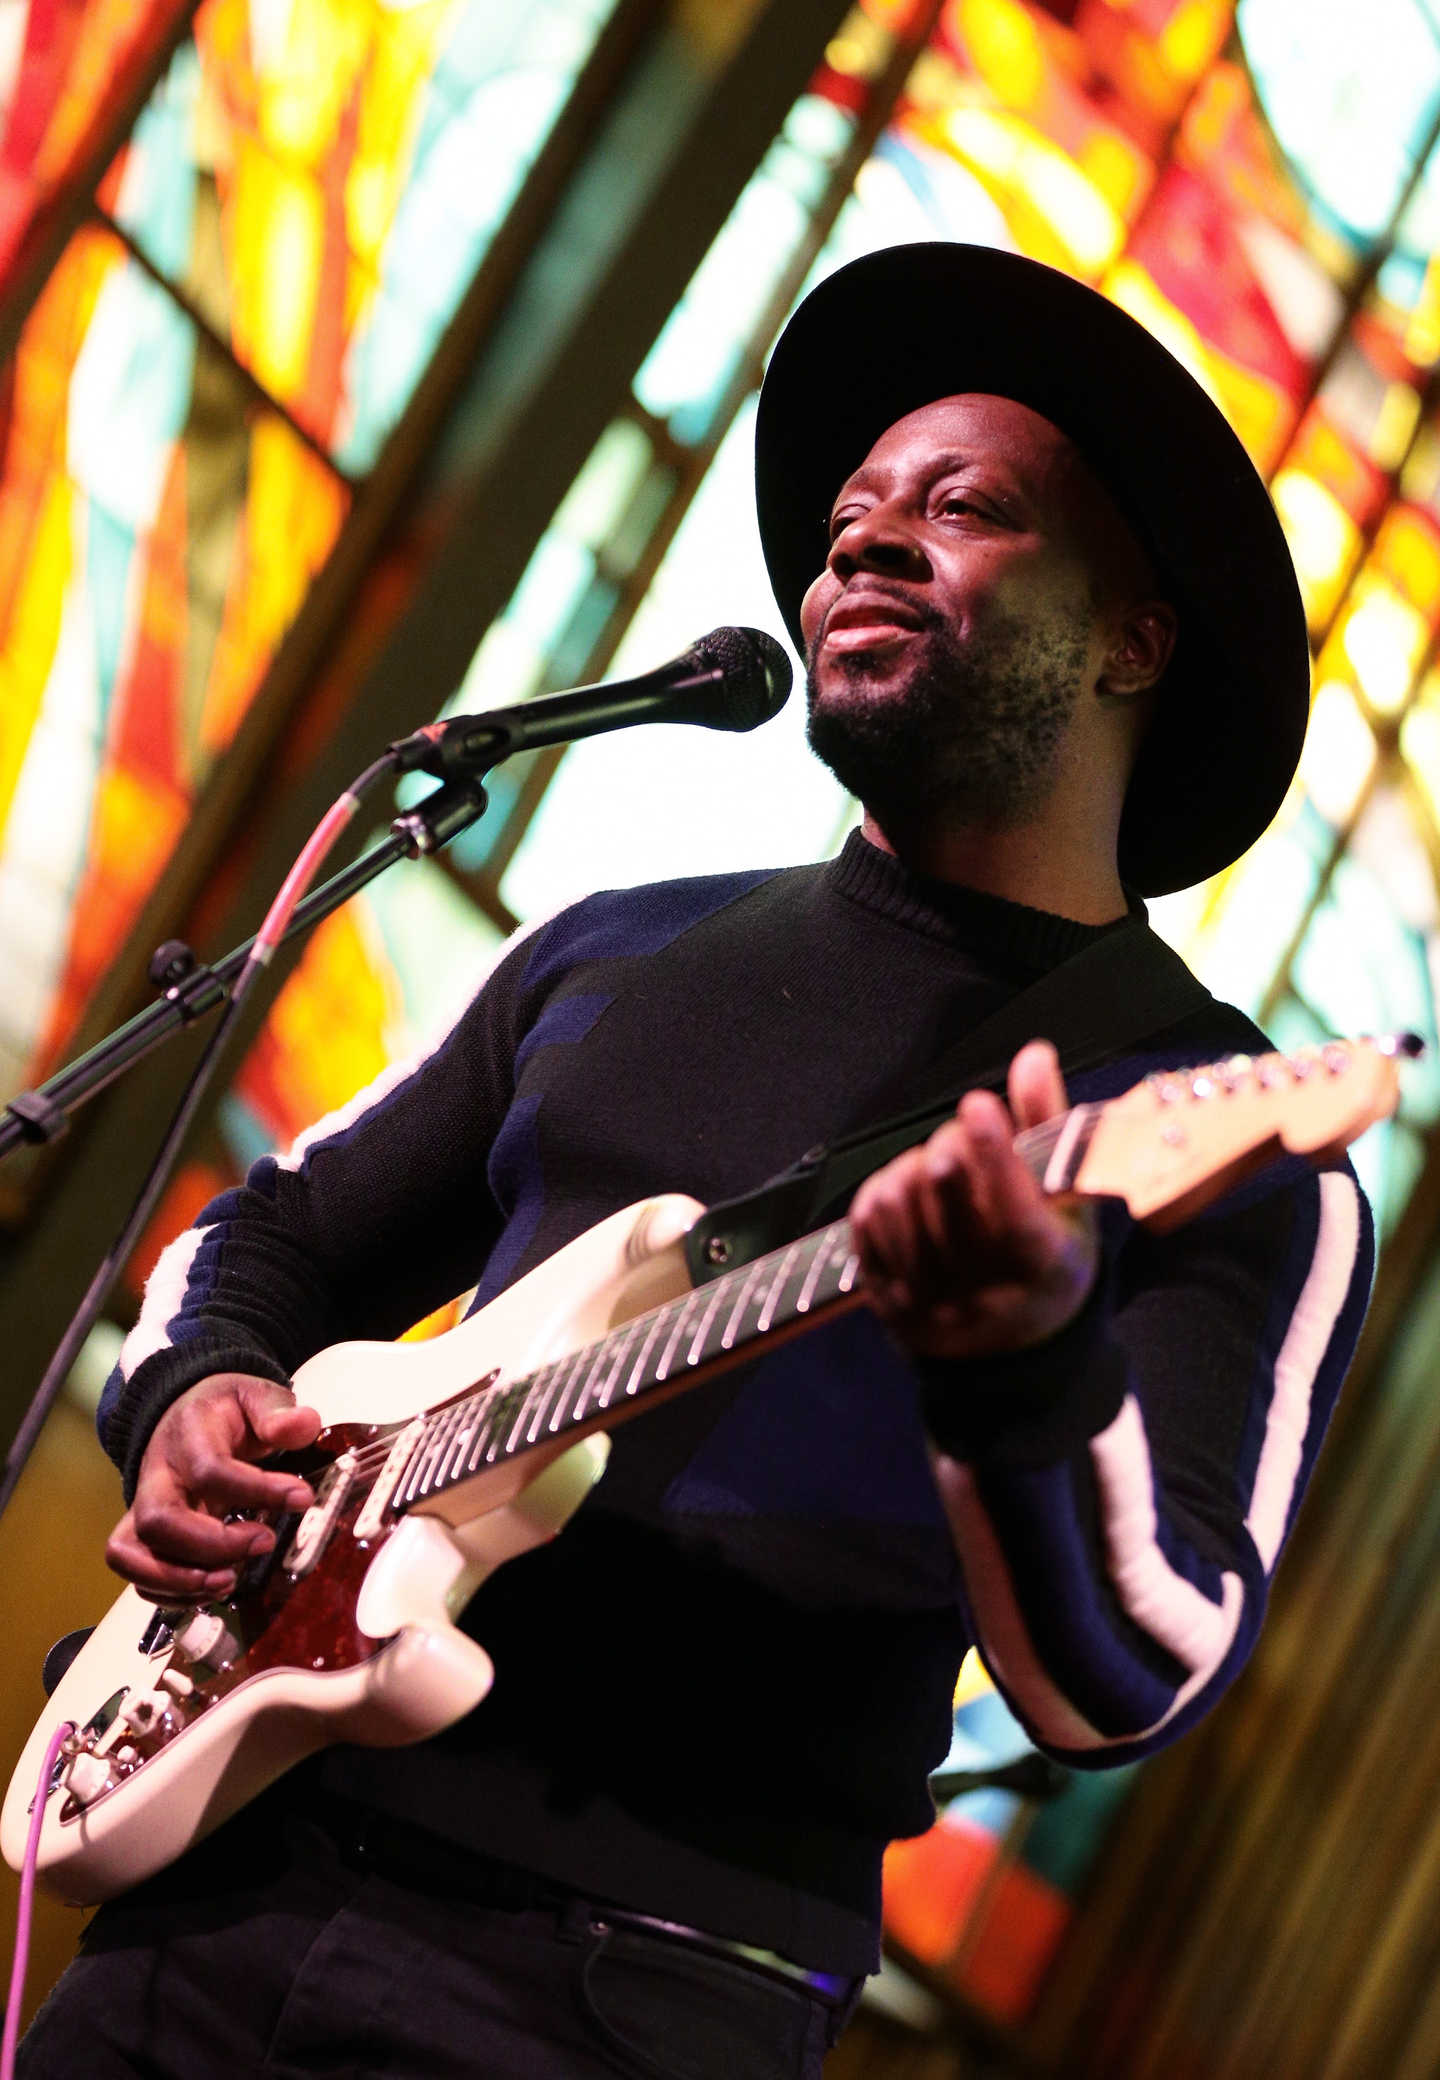 Wyclef Jean performs onstage at NPR Tiny Desk Concert at Central Presbyterian Church.